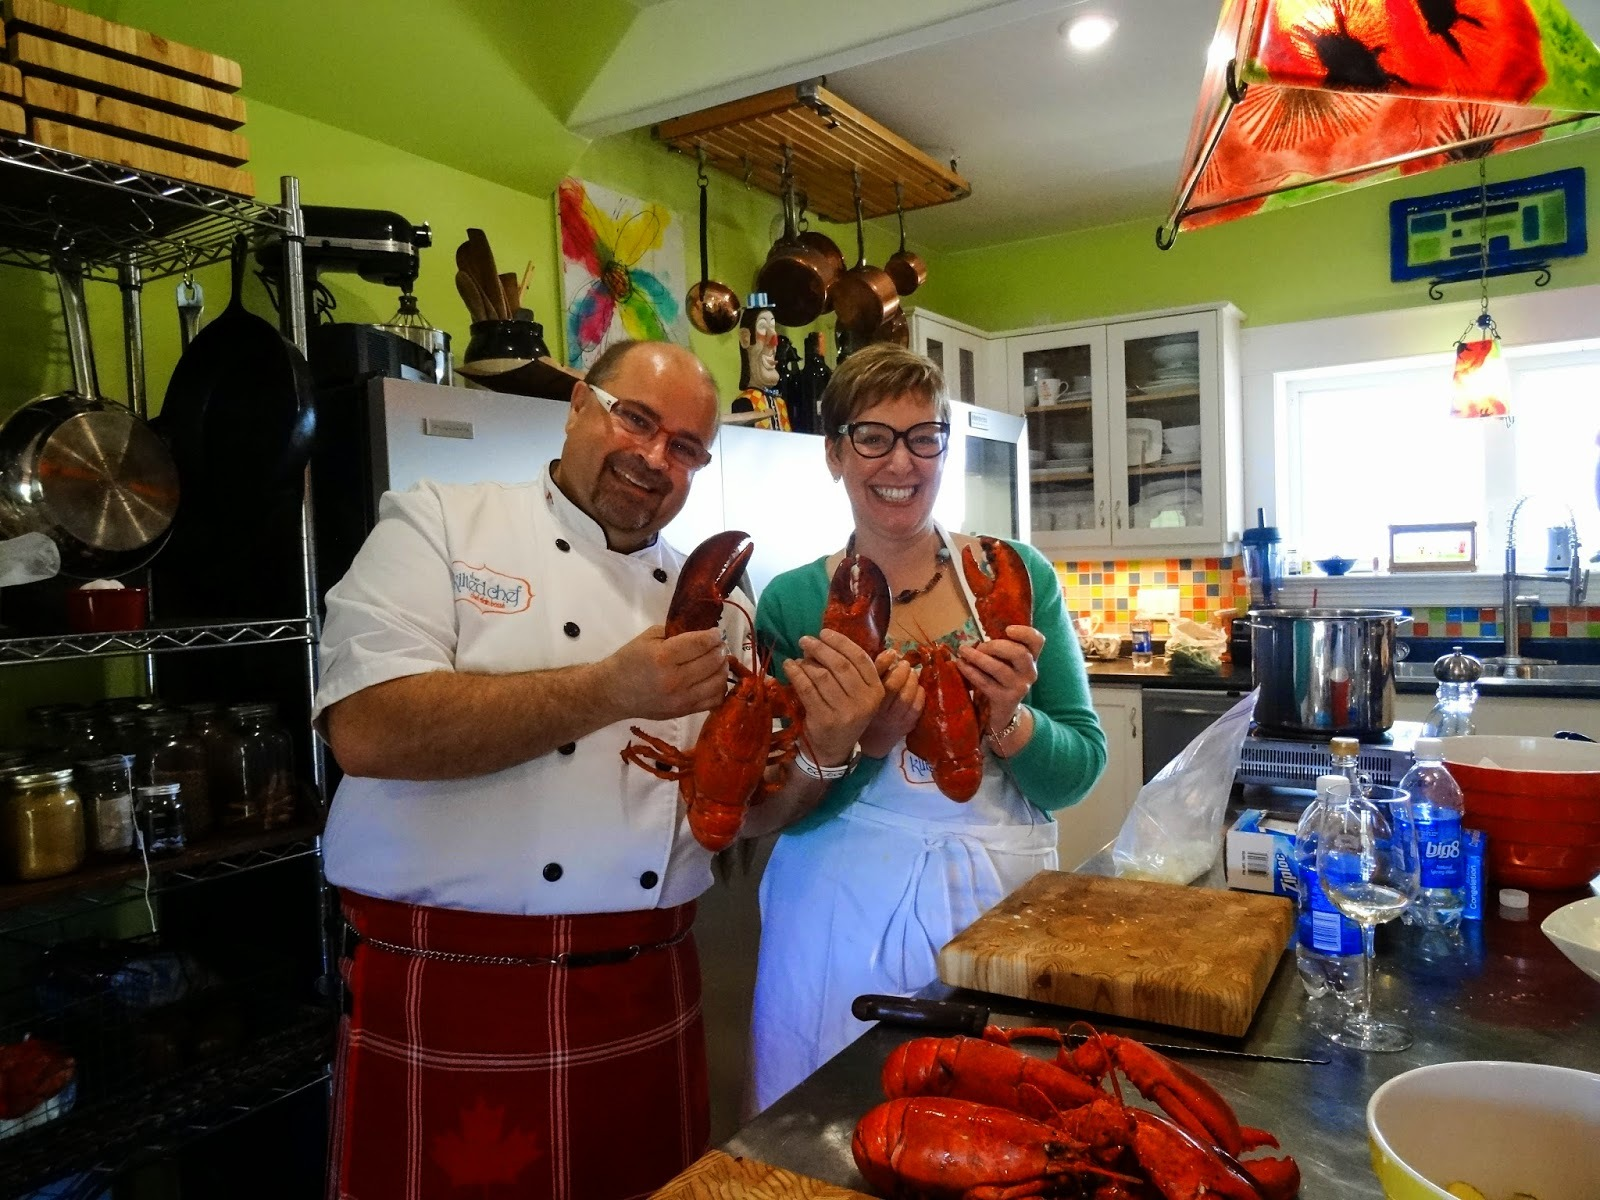 Knife Skills, Candied Bacon and Lobster 101 - The Kilted Chef Pt 2